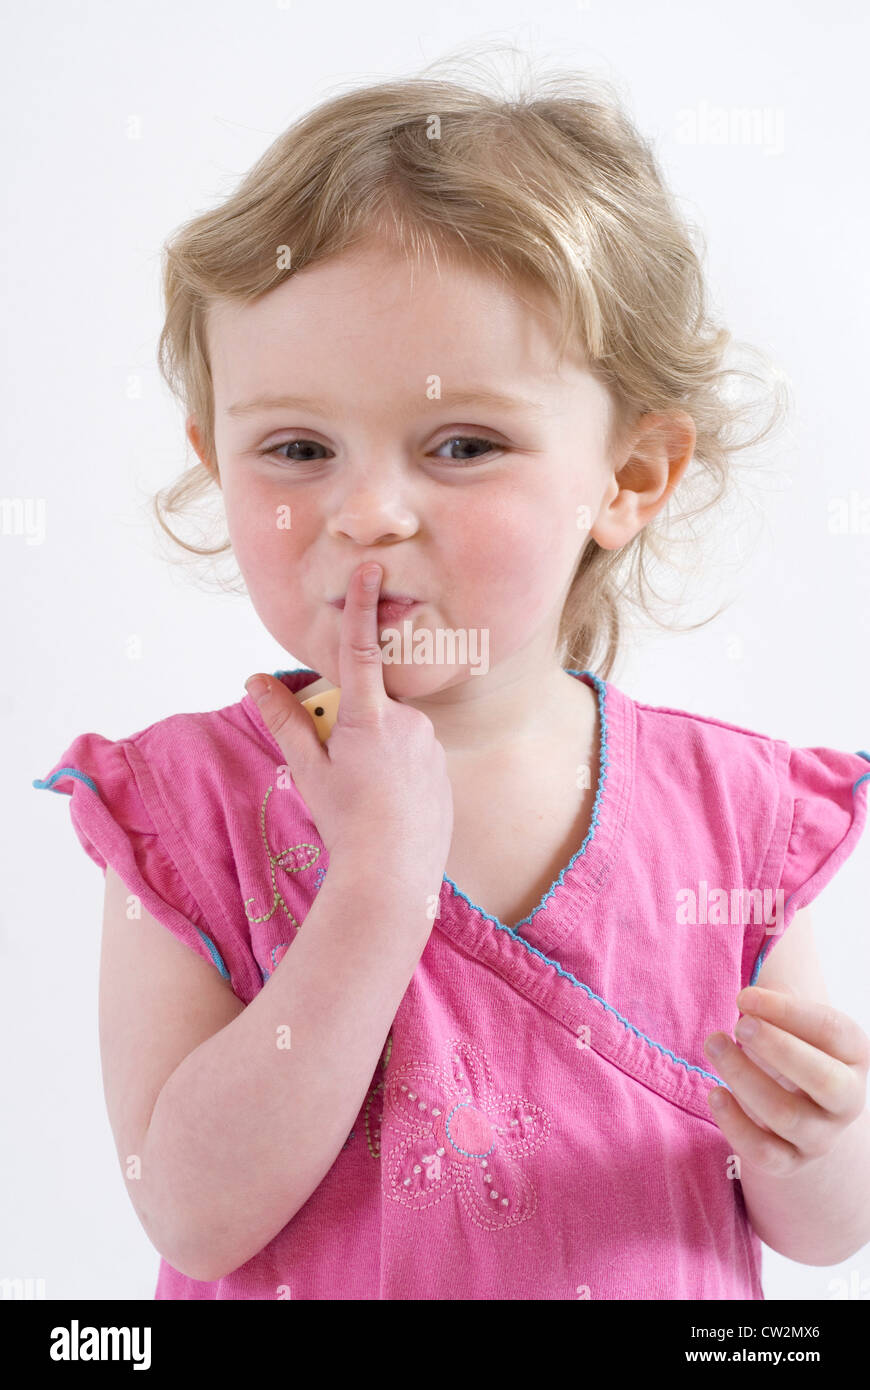 Sshhhhhh! Cute Little Girl Holding up finger to her mouth in Shushing Gesture, Studio Portrait Isolated on White Stock Photo